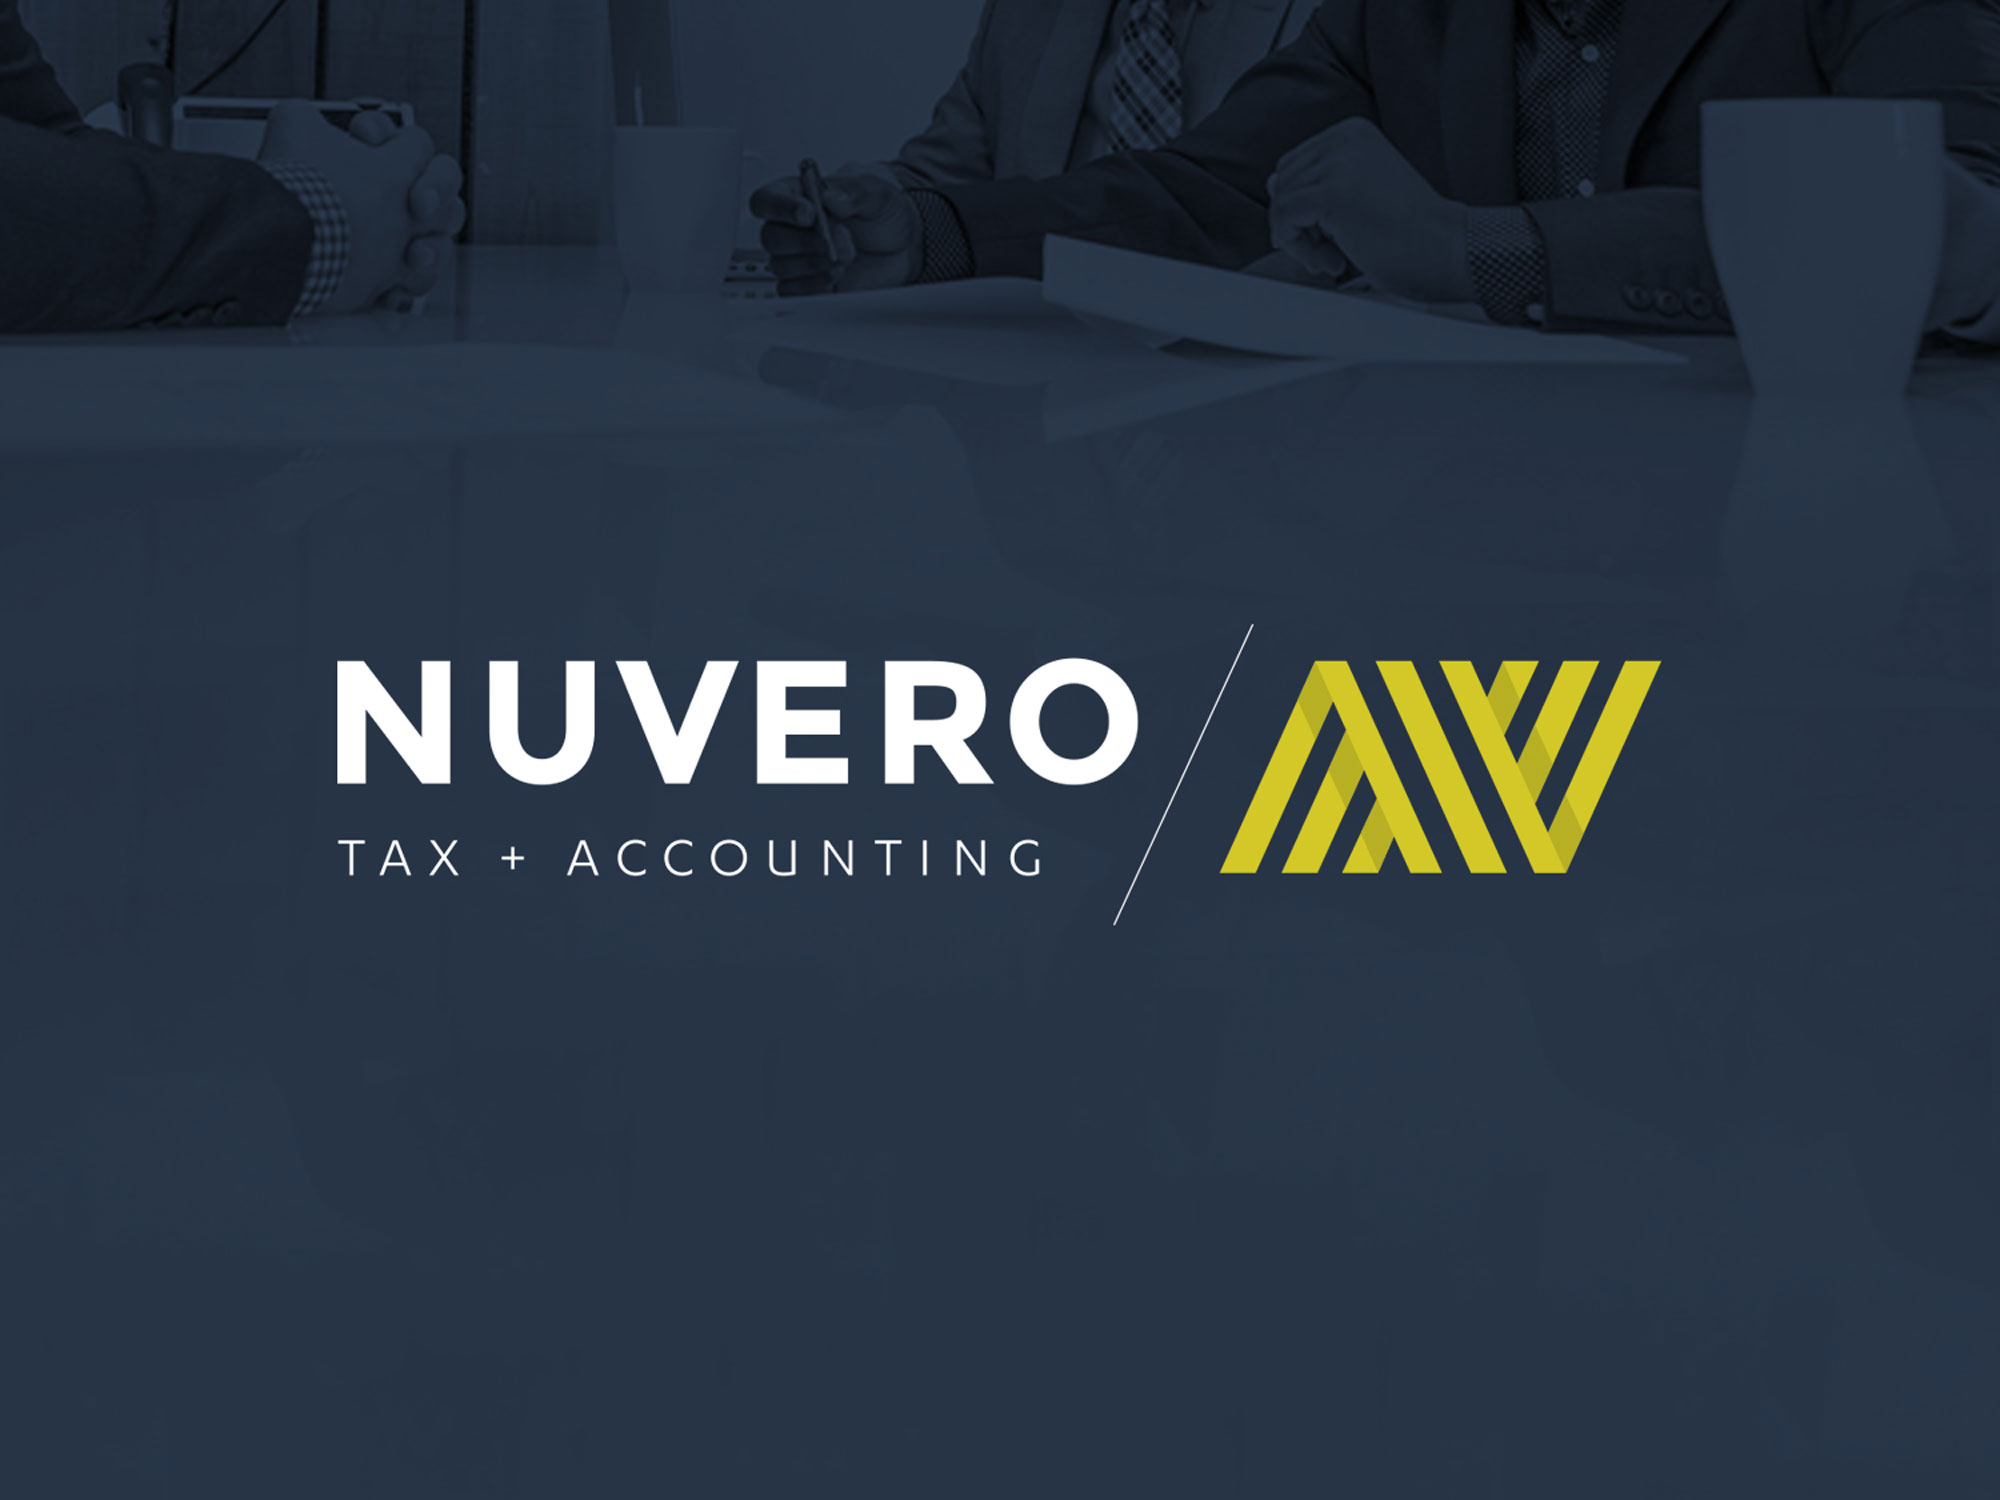 logo design in the branding of nuvero tax and accounting using chartreuse and navy by studio forum in calgary